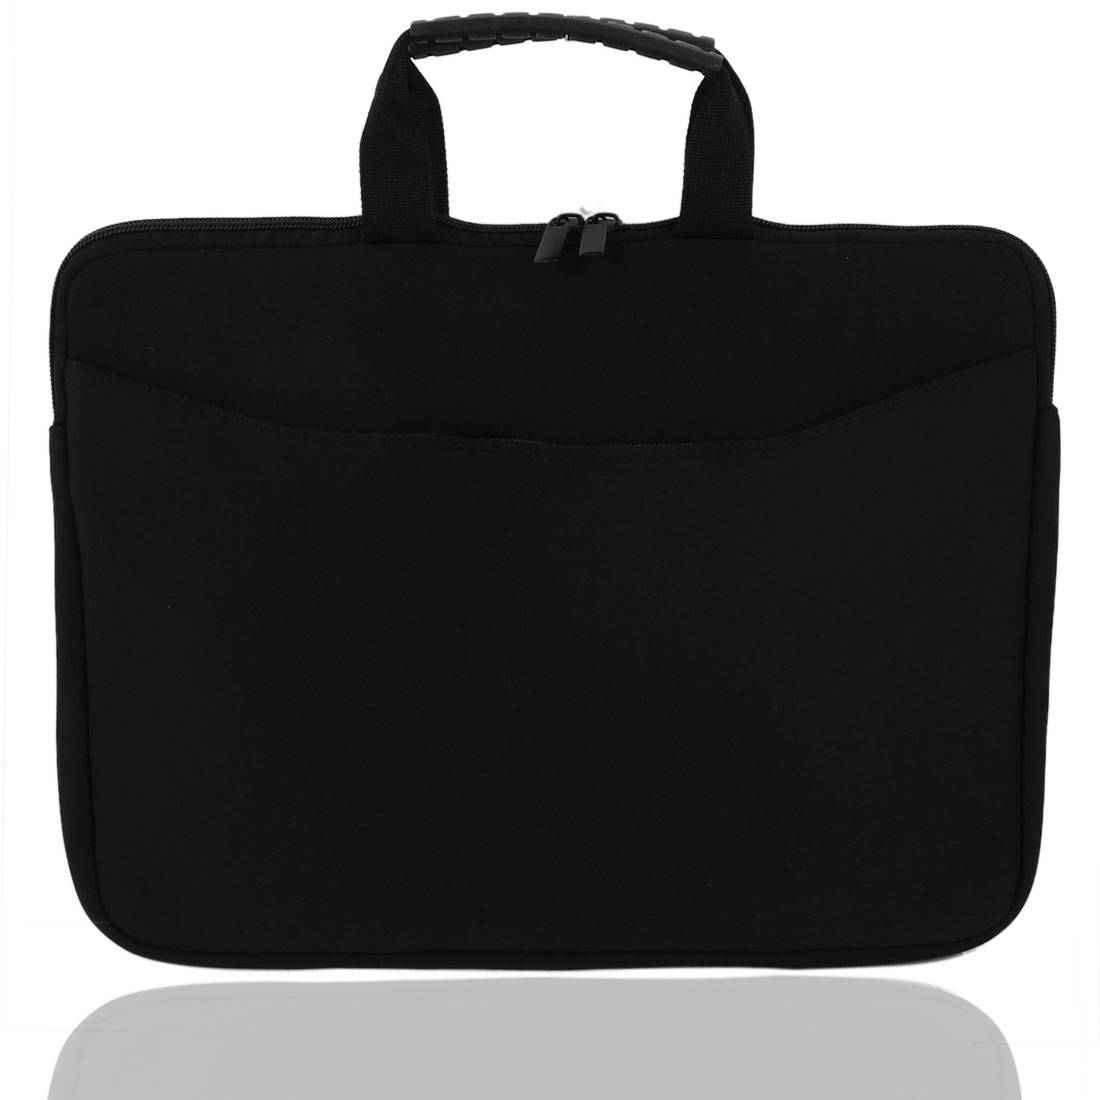 "13"" Neoprene PC Laptop Netbook Notebook Zipper Sleeve Case Bag Cover Pouch Black"